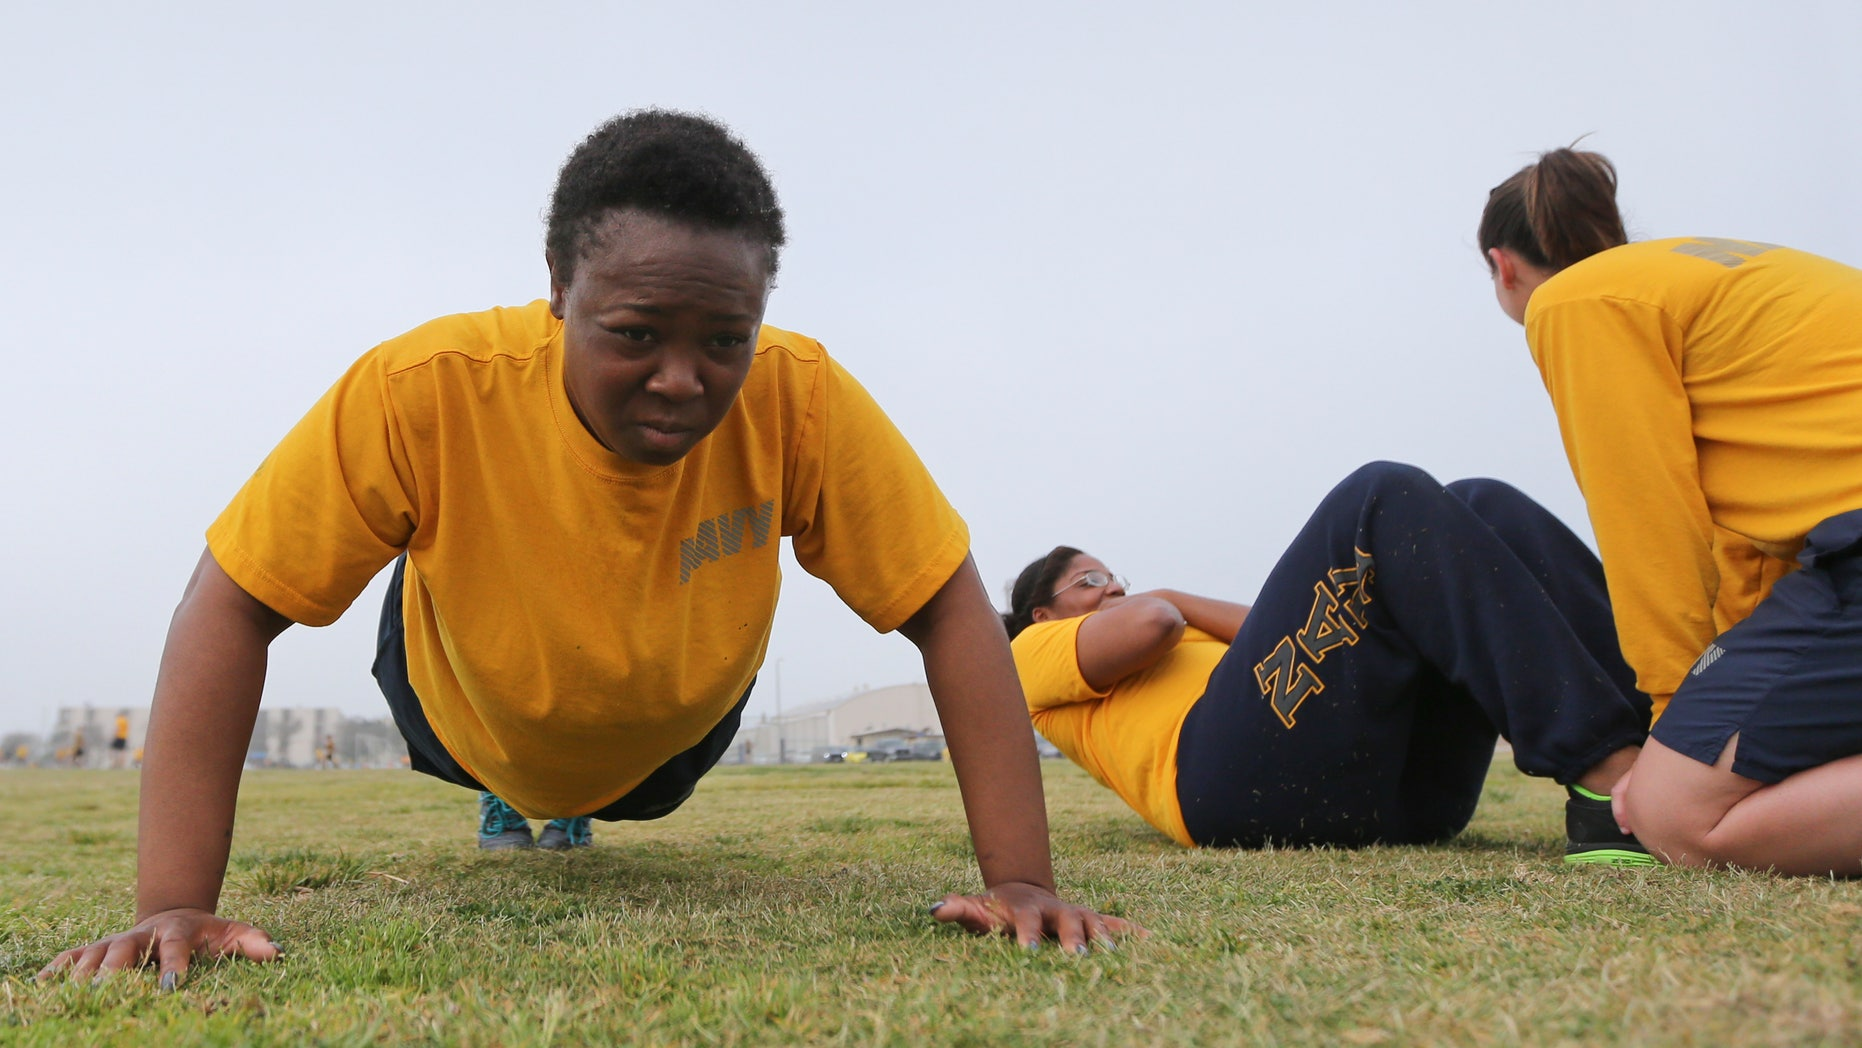 Petty Officer Lentoyi White does pushups while training with fellow Petty Officer Theresa White Monday, Feb. 29, 2016, in Coronado, Calif. The pair are trying to lose weight and improve their fitness in order to pass the Navy fitness test and avert being discharged. (AP Photo/Lenny Ignelzi)